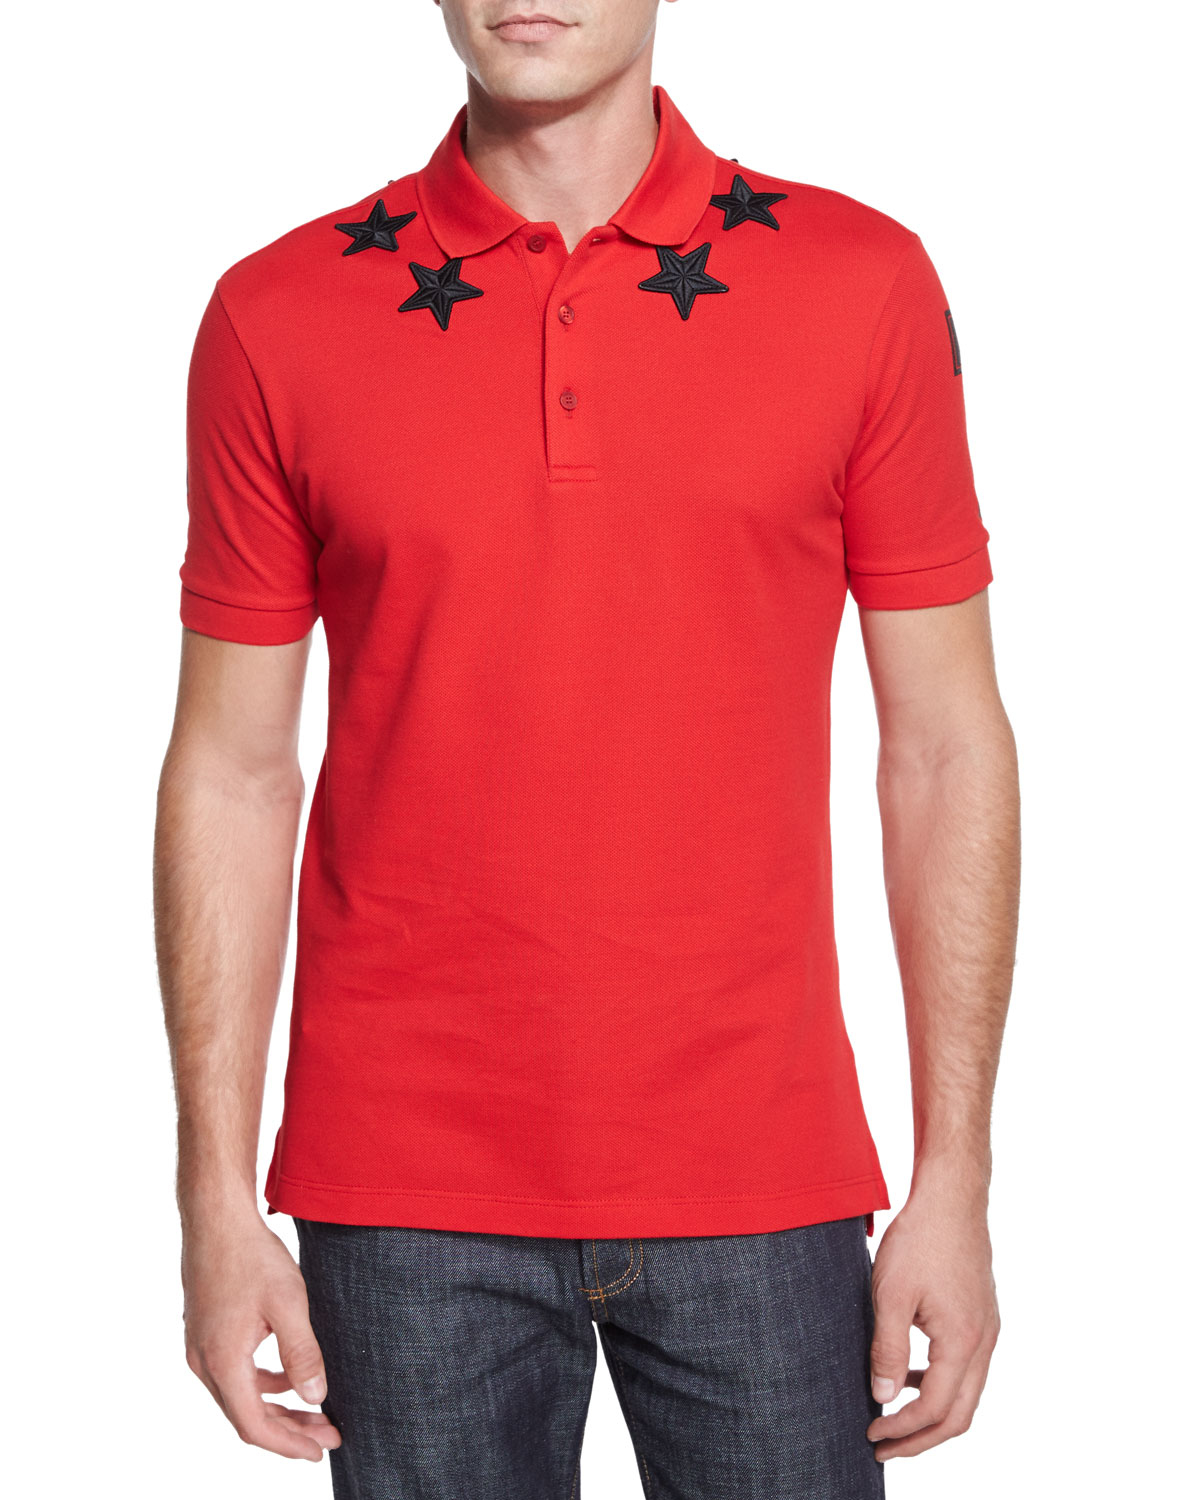 Givenchy Star Print Knit Polo Shirt In Red For Men Lyst